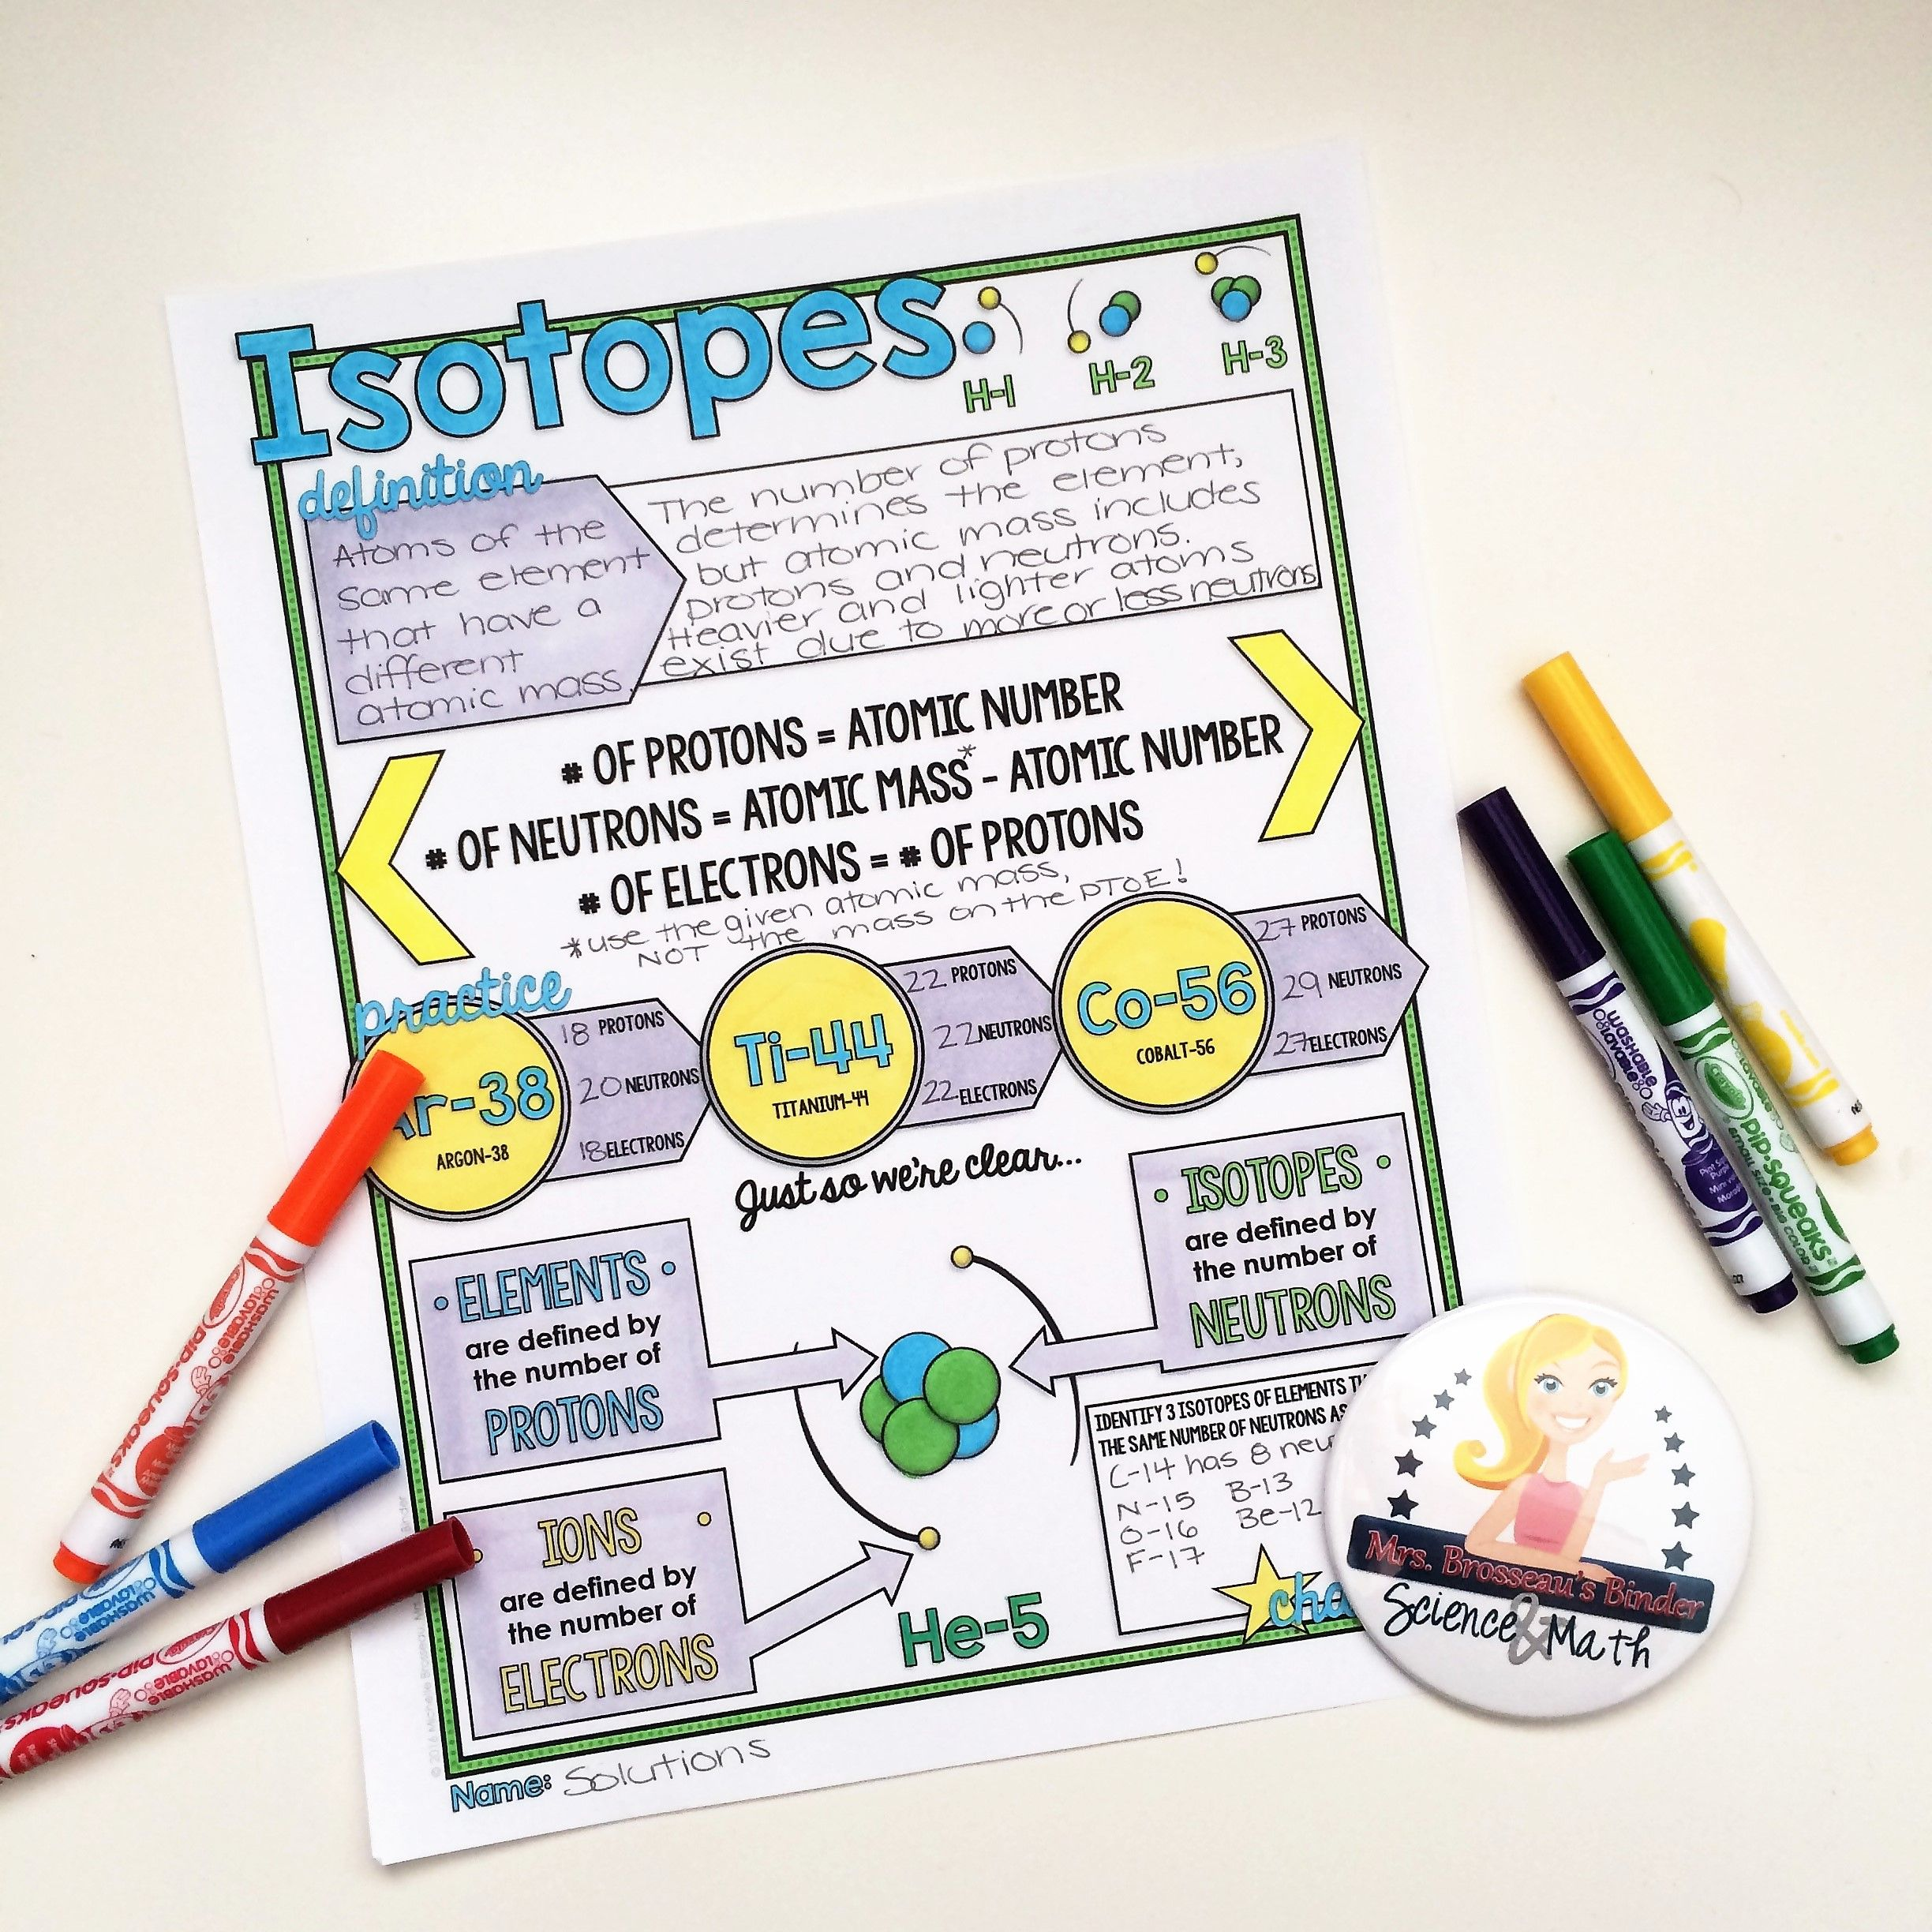 Nuclear Energy Physics Doodle Notes Anchor Charts Chemistry Circuit Symbols Class Ideas 8th Grade Mindmap Galaxy Your Students Will Love These Connect Left And Right Brain